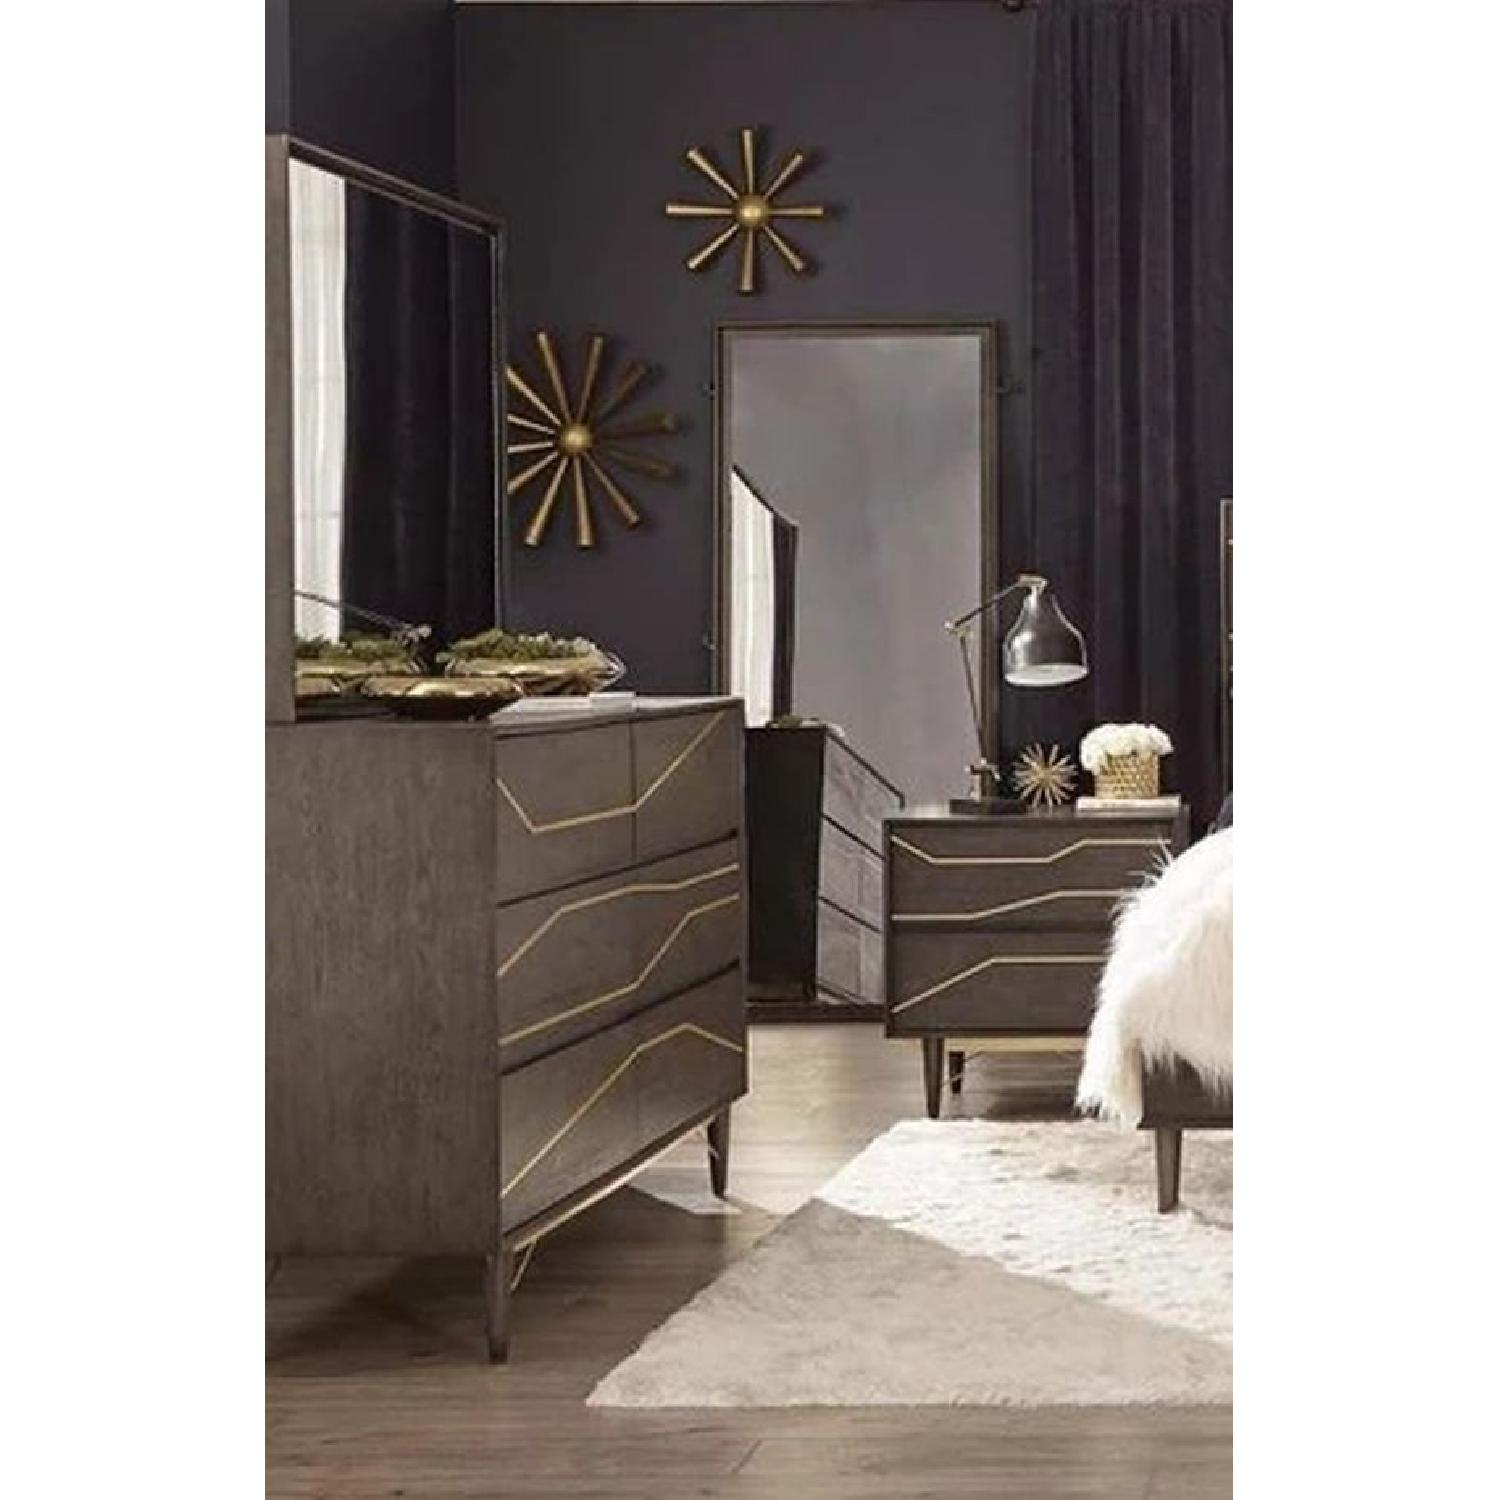 Modern Dresser in Graphite Finish w/ Gold Color Inlay - image-3